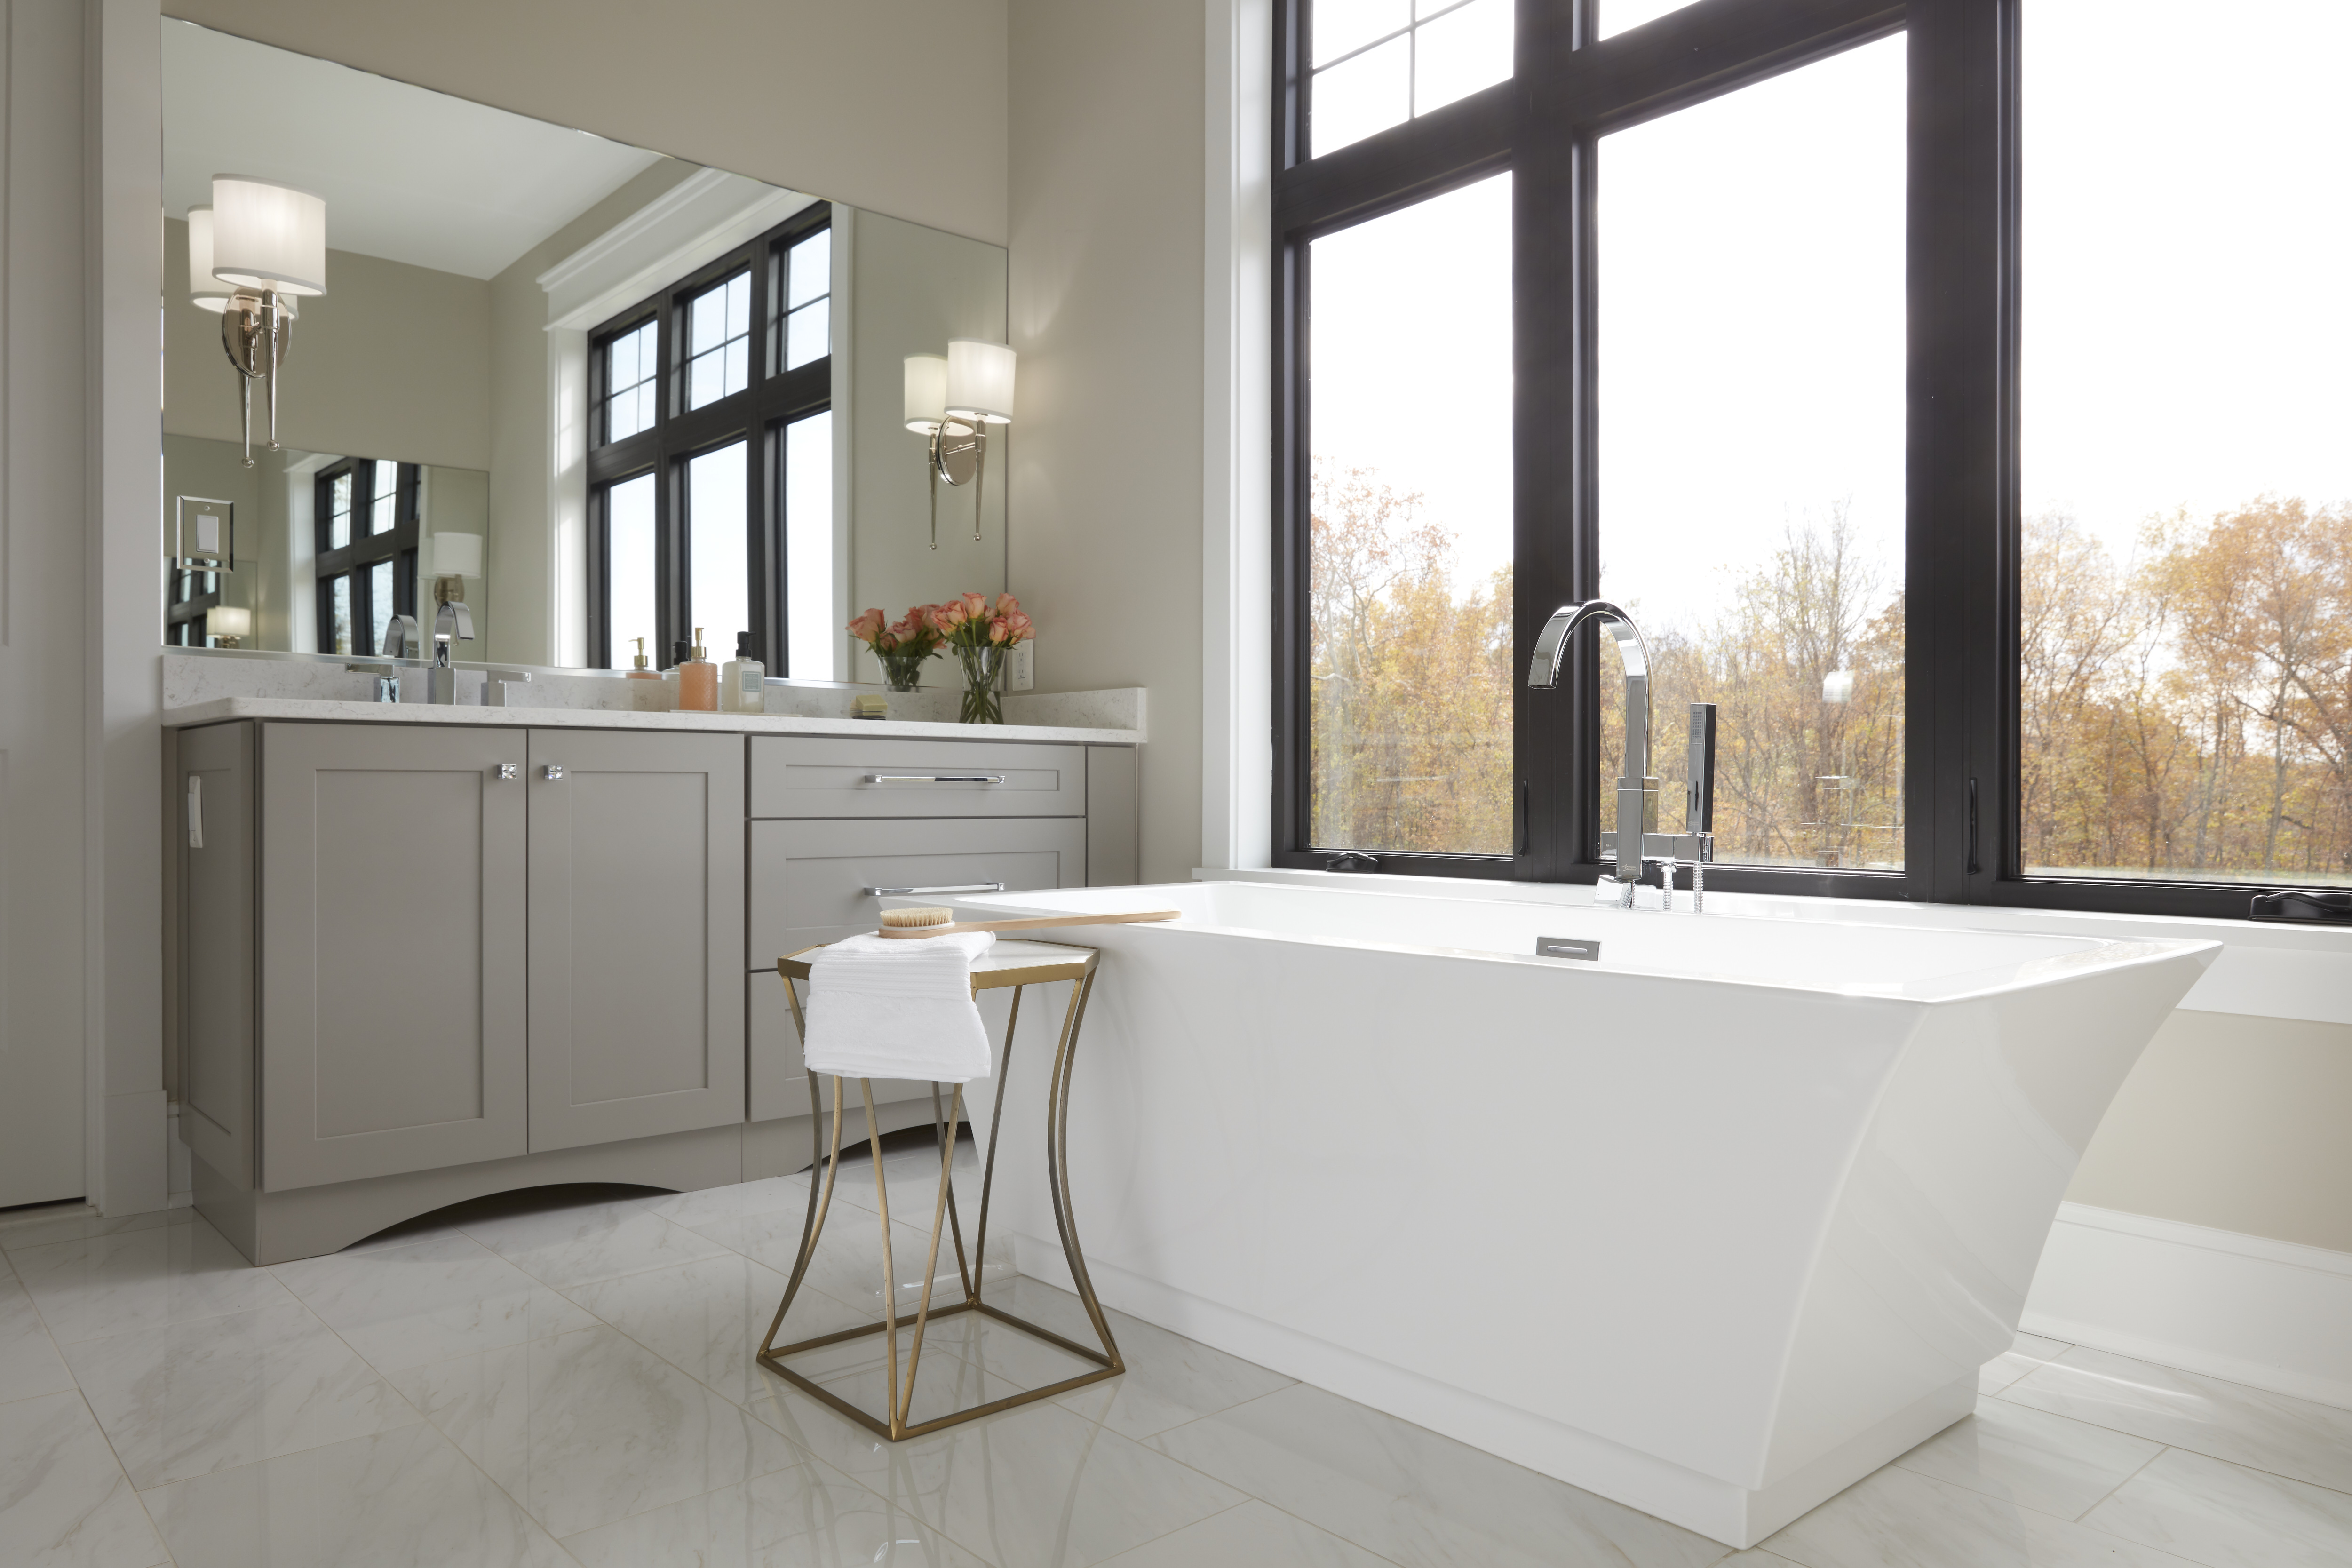 Frederick Master Bath Cabinet, Lighting and tub detail